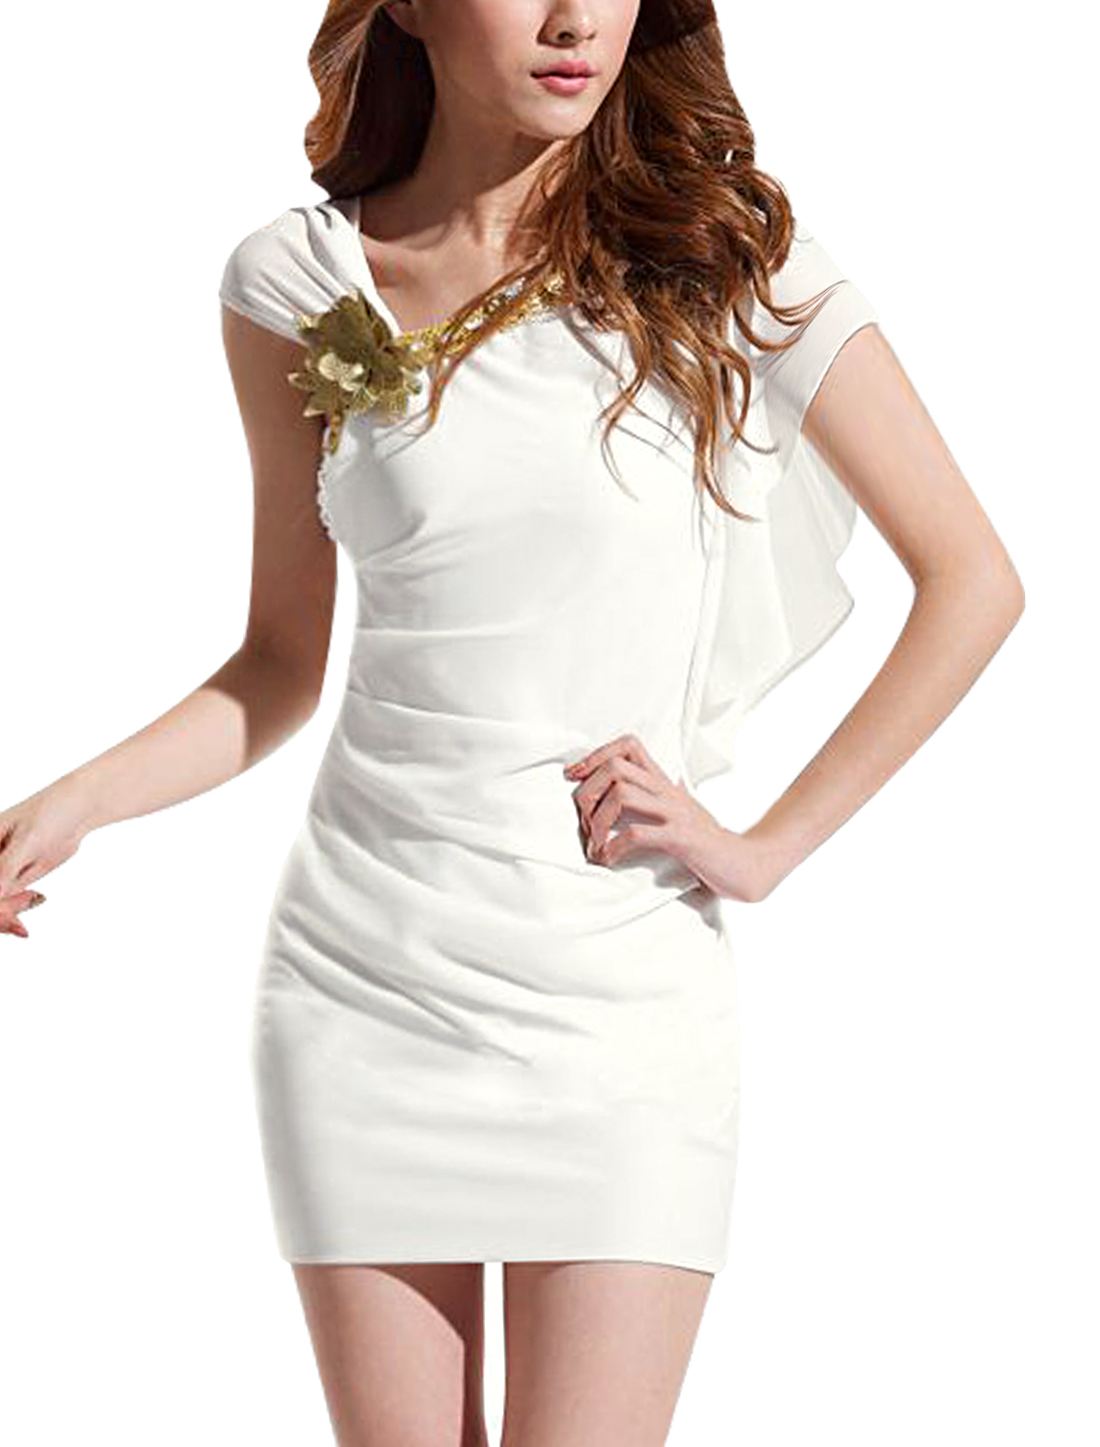 Ladies Aymmetric Neck Flower Decor Slim Fit Sheath Dress White XS